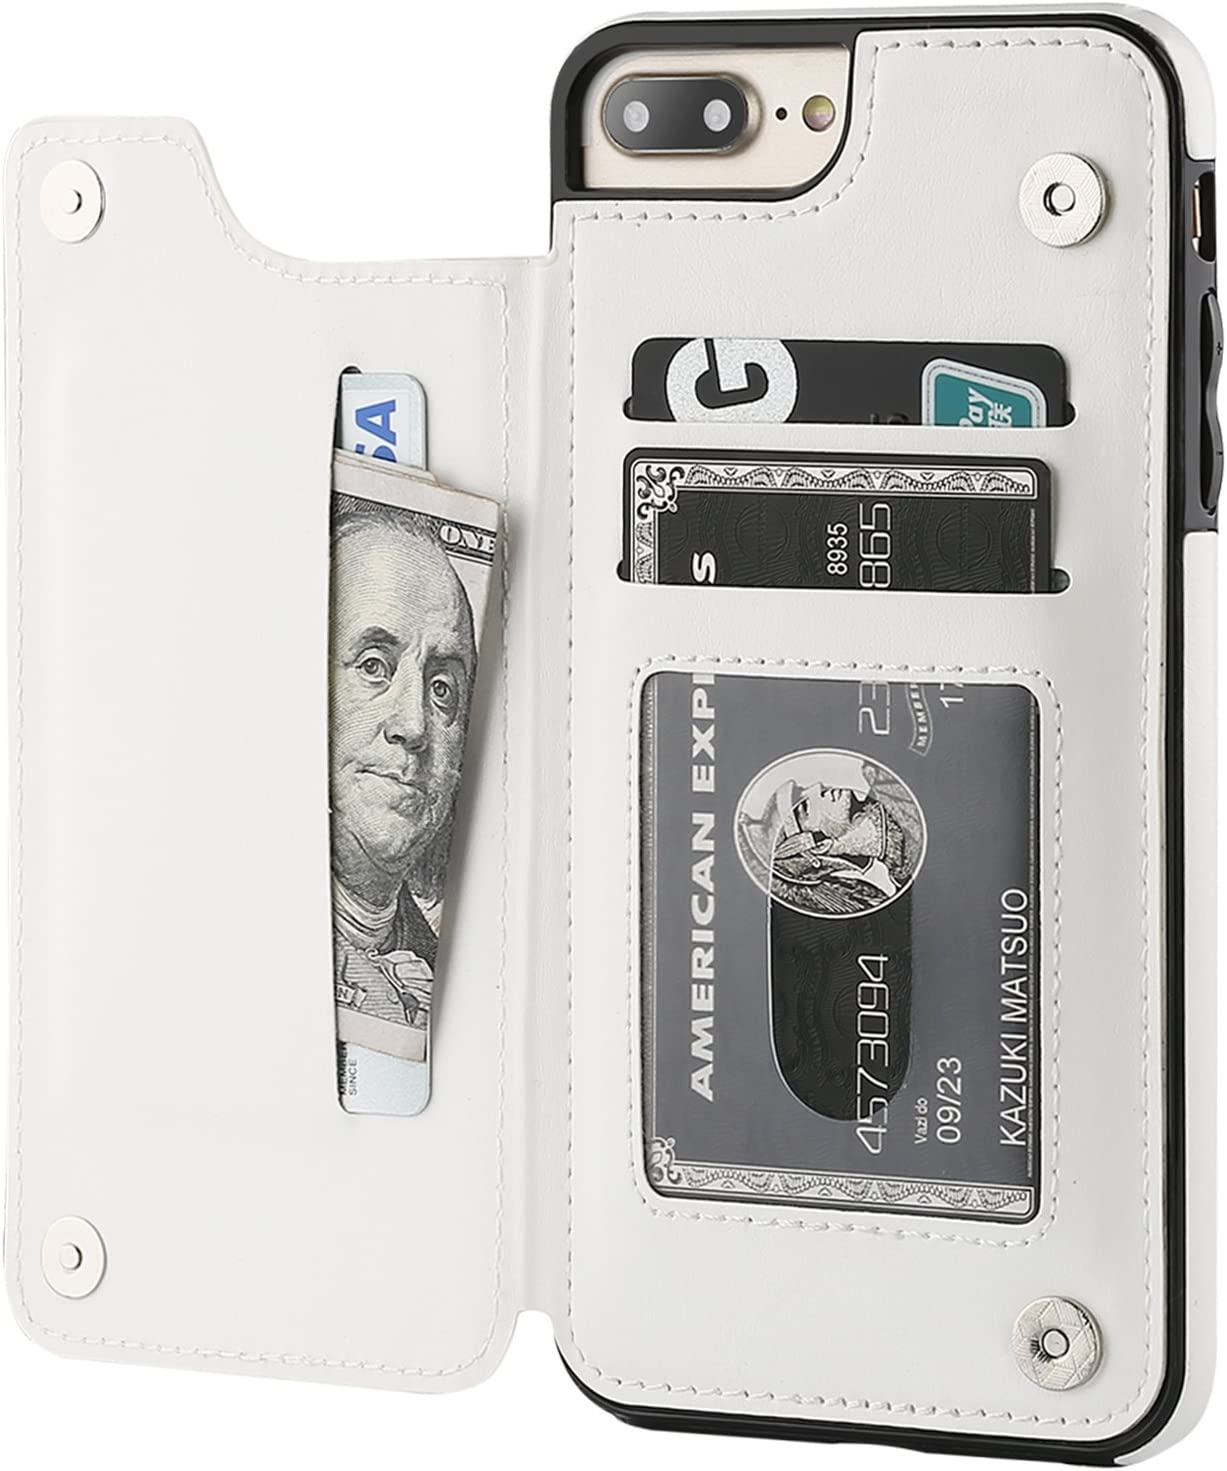 iPhone 7 Plus iPhone 8 Plus Wallet Case with Card Holder,OT ONETOP Premium PU Leather Kickstand Card Slots Case,Double Magnetic Clasp and Durable Shockproof Cover 5.5 Inch(White)